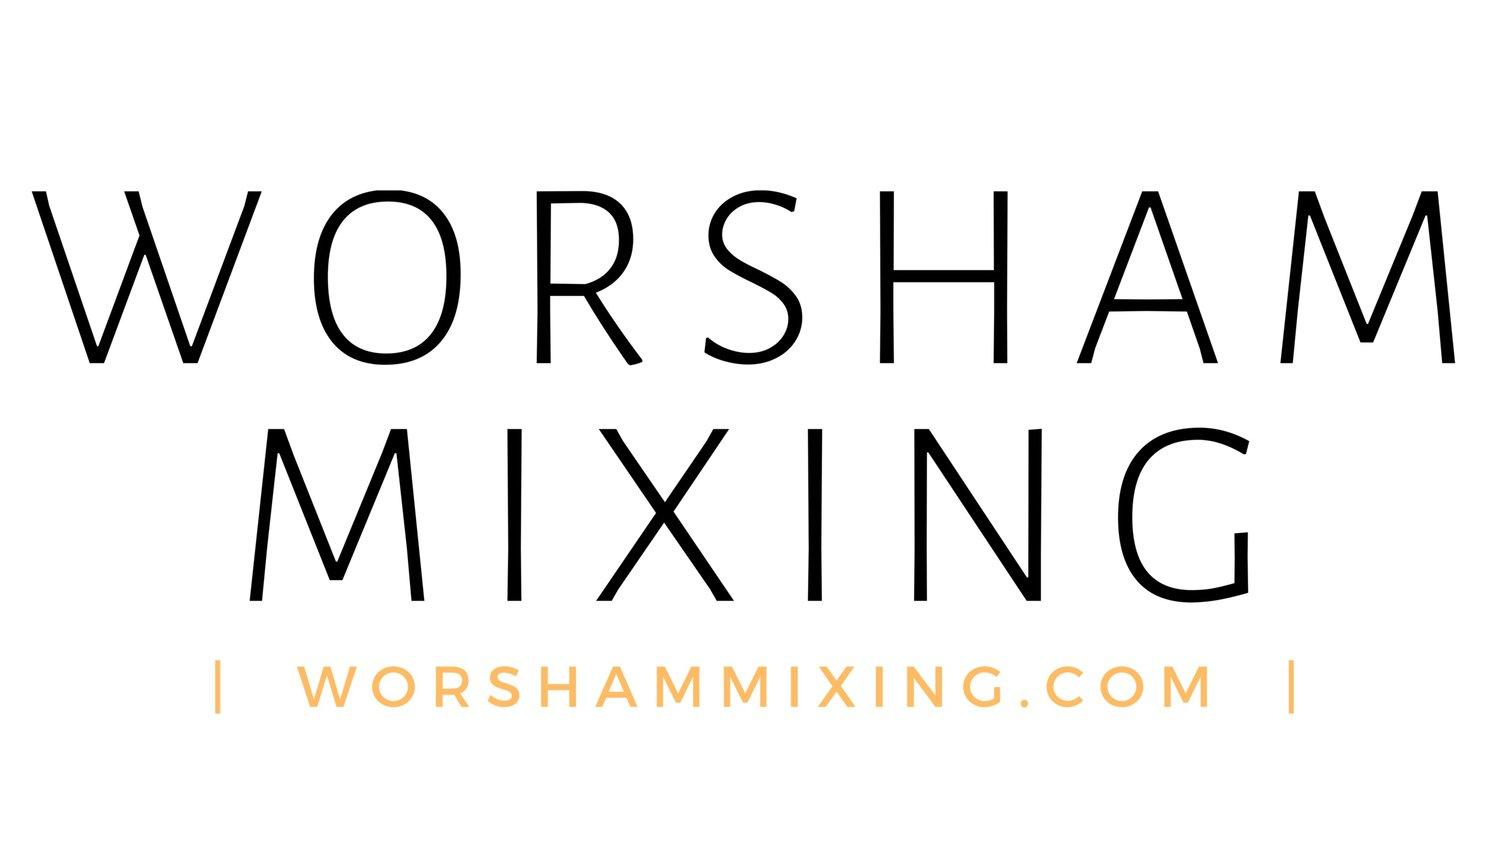 WORSHAM MIXING  |  James Worsham  |  Professional Mixing Engineer